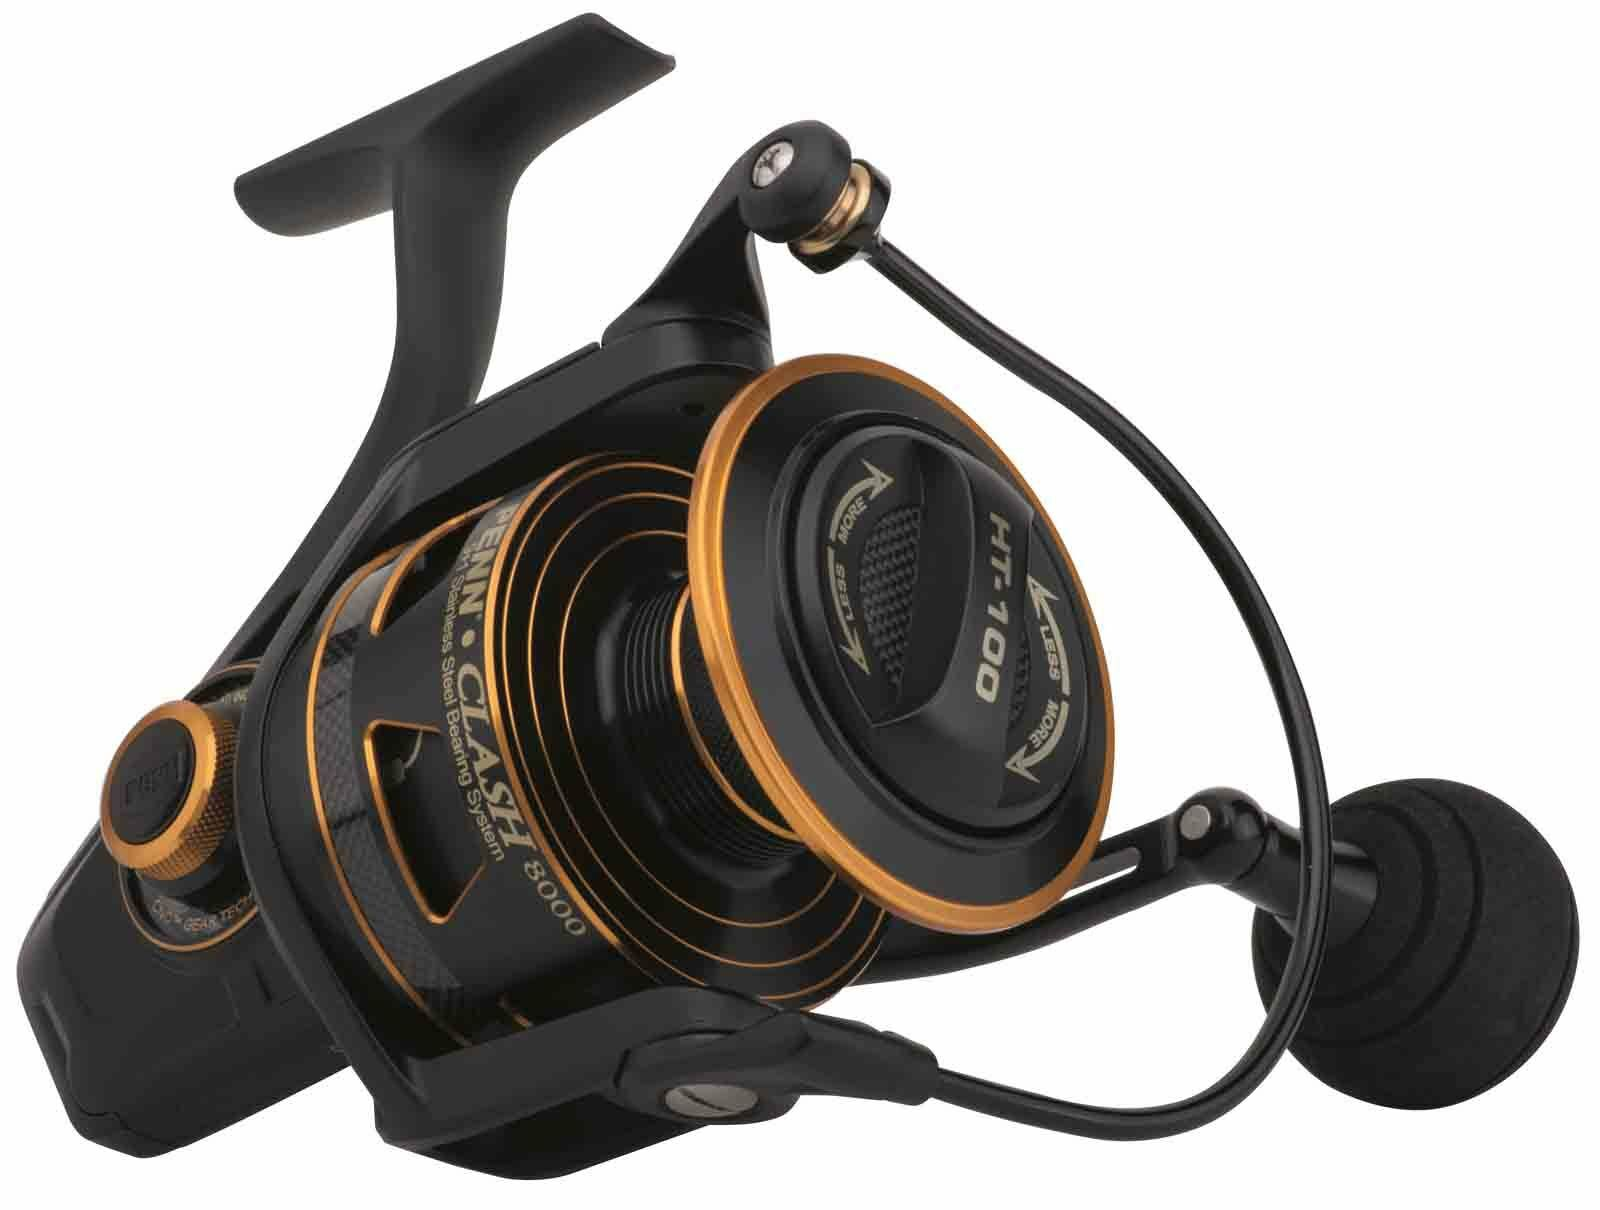 Penn Clash Saltwater Saltwater Clash Spin Spinning Sea Fishing Reels - All Models Available 7be9a0